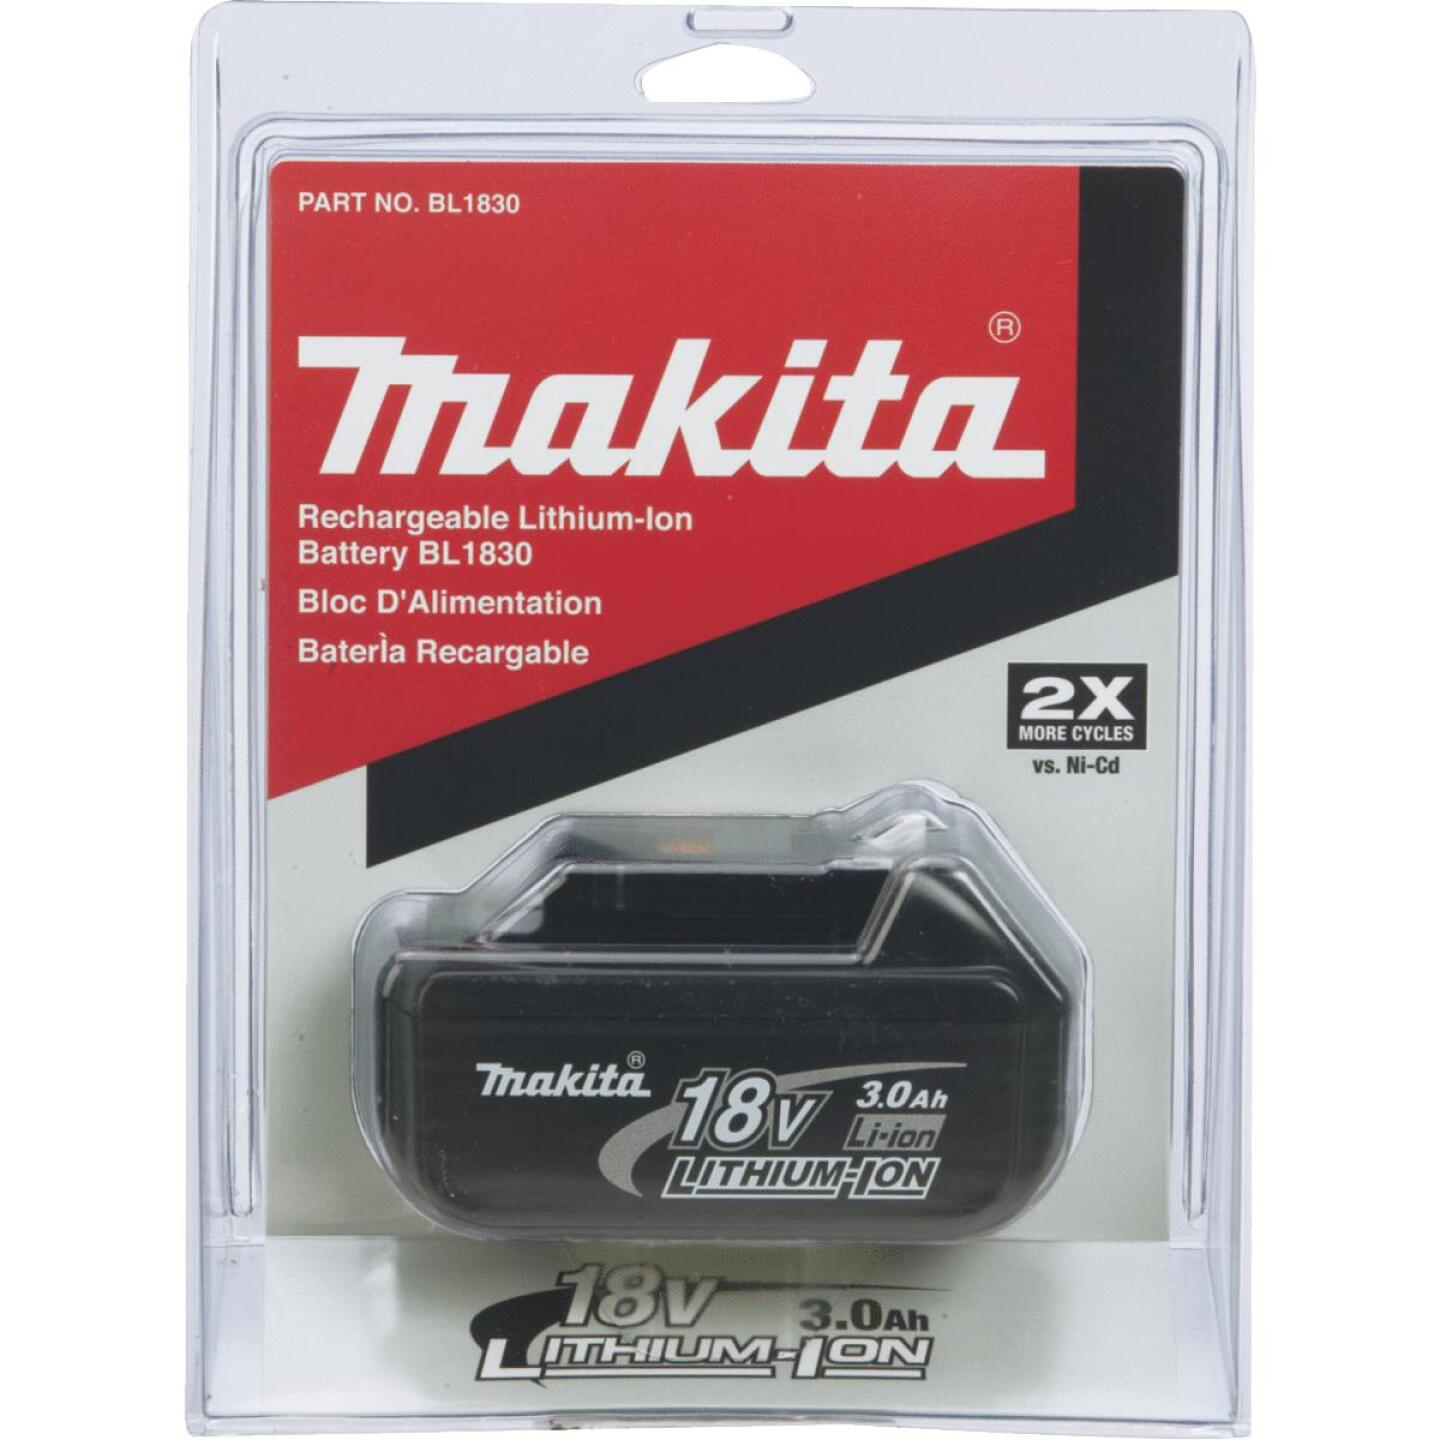 Makita 18 Volt LXT Lithium-Ion 3.0 Ah Tool Battery Image 2